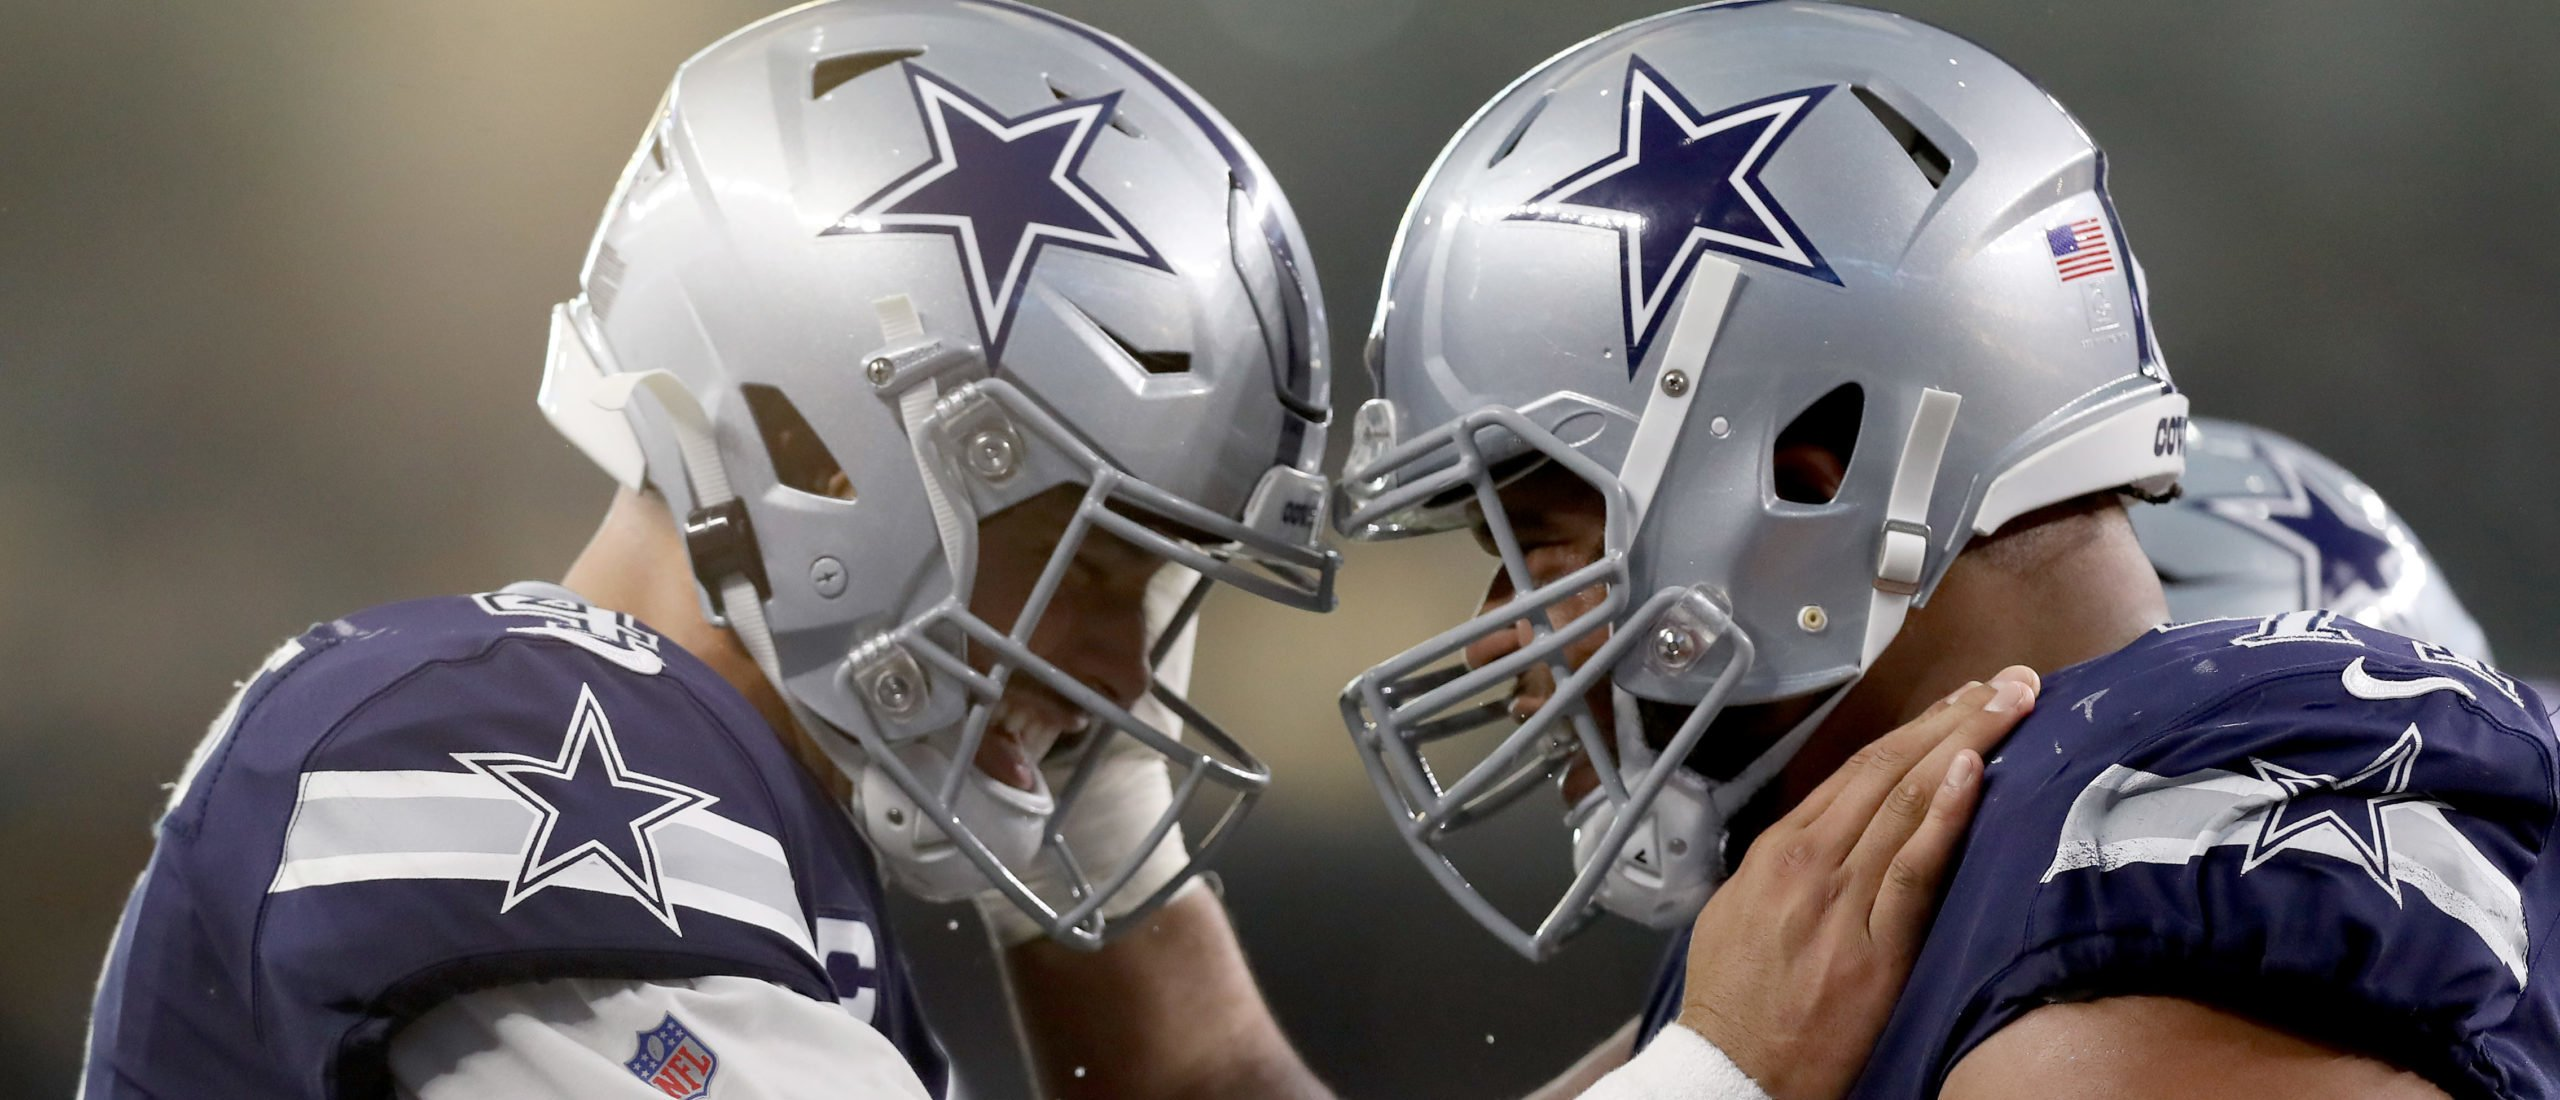 ARLINGTON, TEXAS - DECEMBER 15: Dak Prescott #4 of the Dallas Cowboys celebrates with La'el Collins #71 of the Dallas Cowboys after the Dallas Cowboys scored a touchdown against the Los Angeles Rams in the second quarter at AT&T Stadium on December 15, 2019 in Arlington, Texas. (Photo by Tom Pennington/Getty Images)